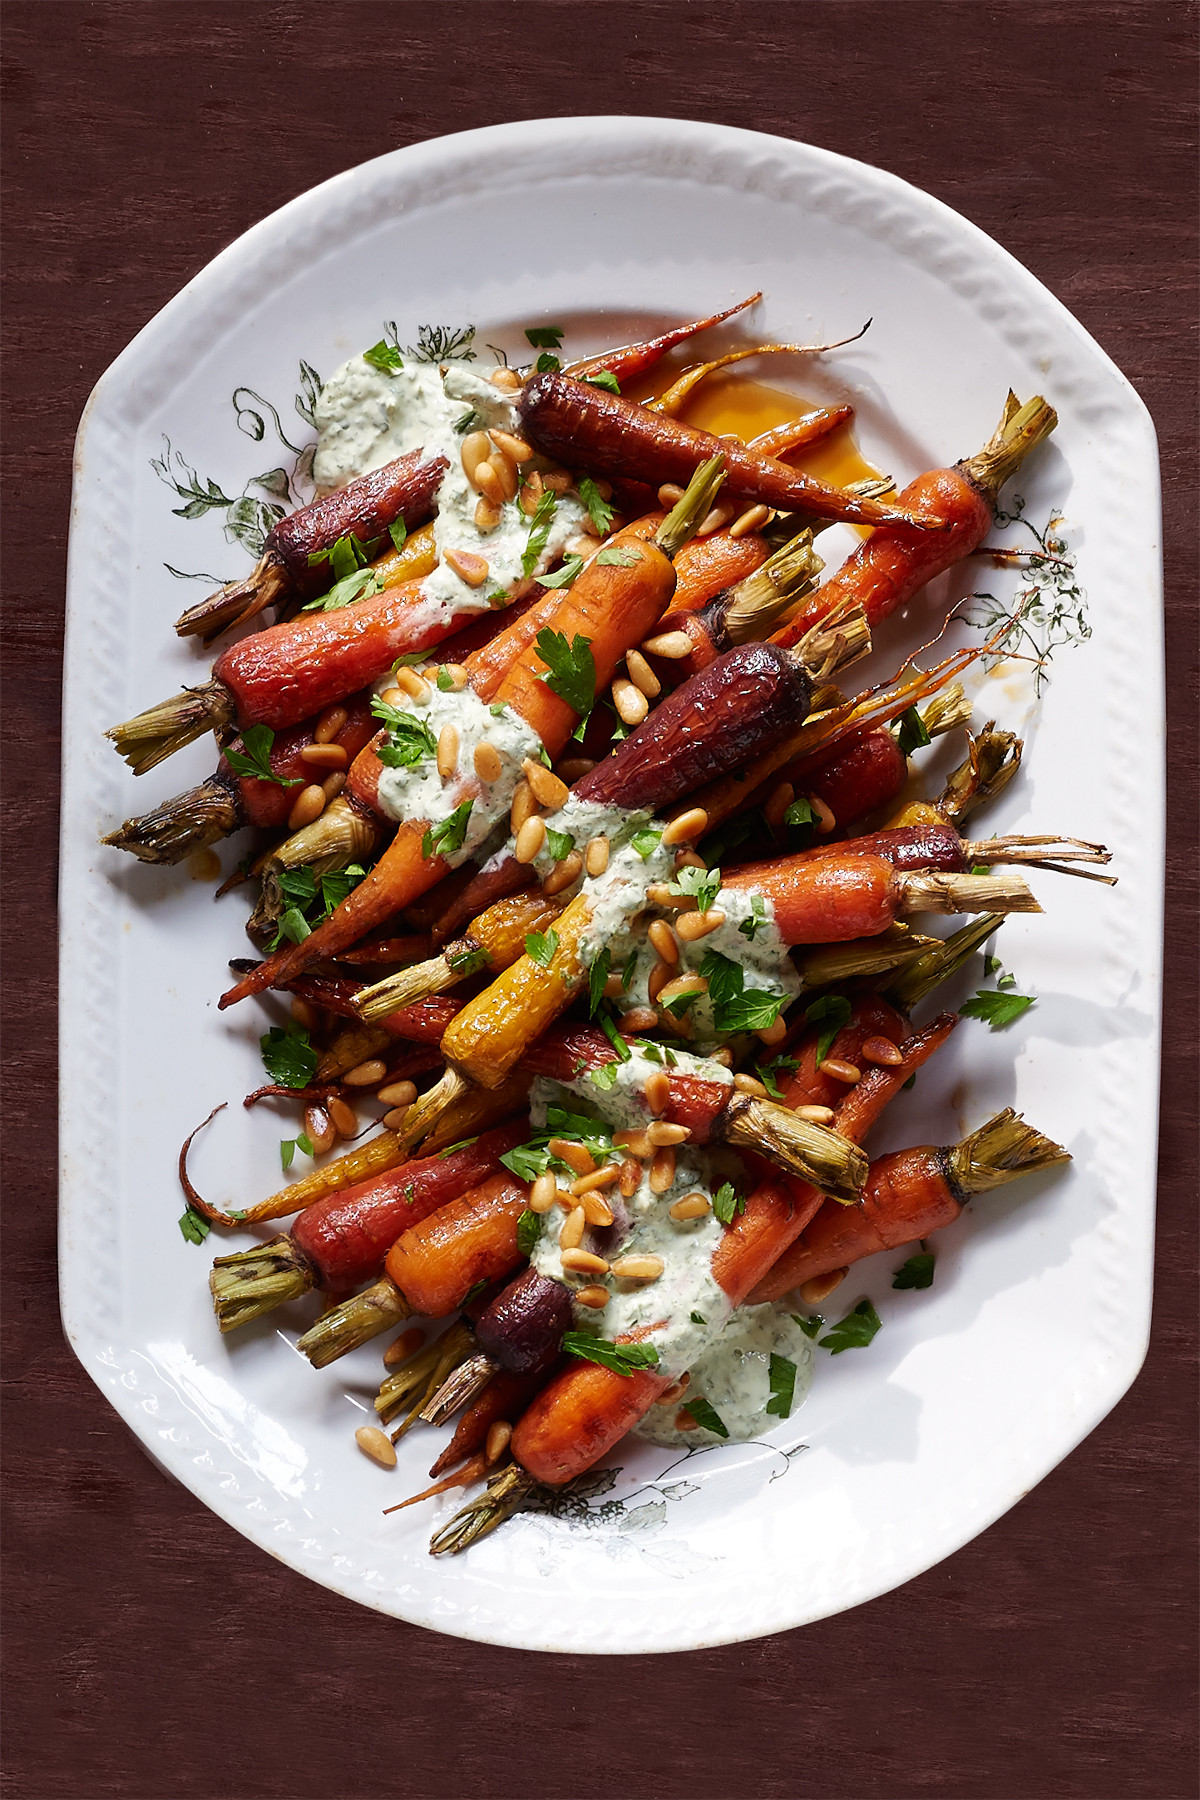 Thanksgiving Dinner Side Dishes Recipes  25 Easy Ve able Side Dishes Recipes for Best Ve able